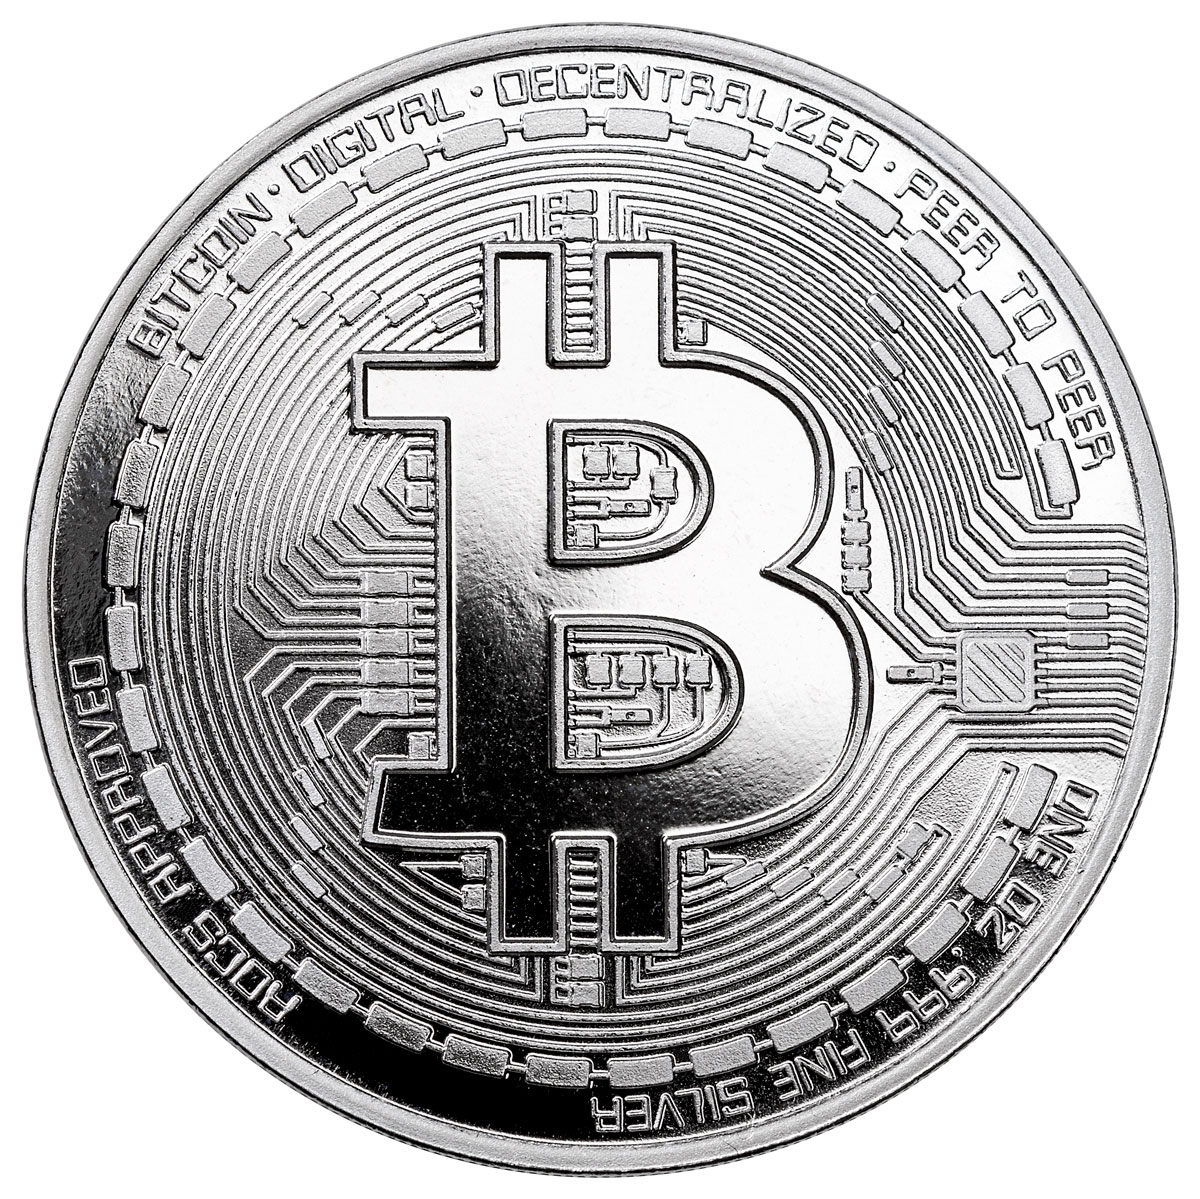 2020 Republic of Chad BitCoin Crypto Currency 1 oz Silver Proof Fr5,000 Coin GEM Proof